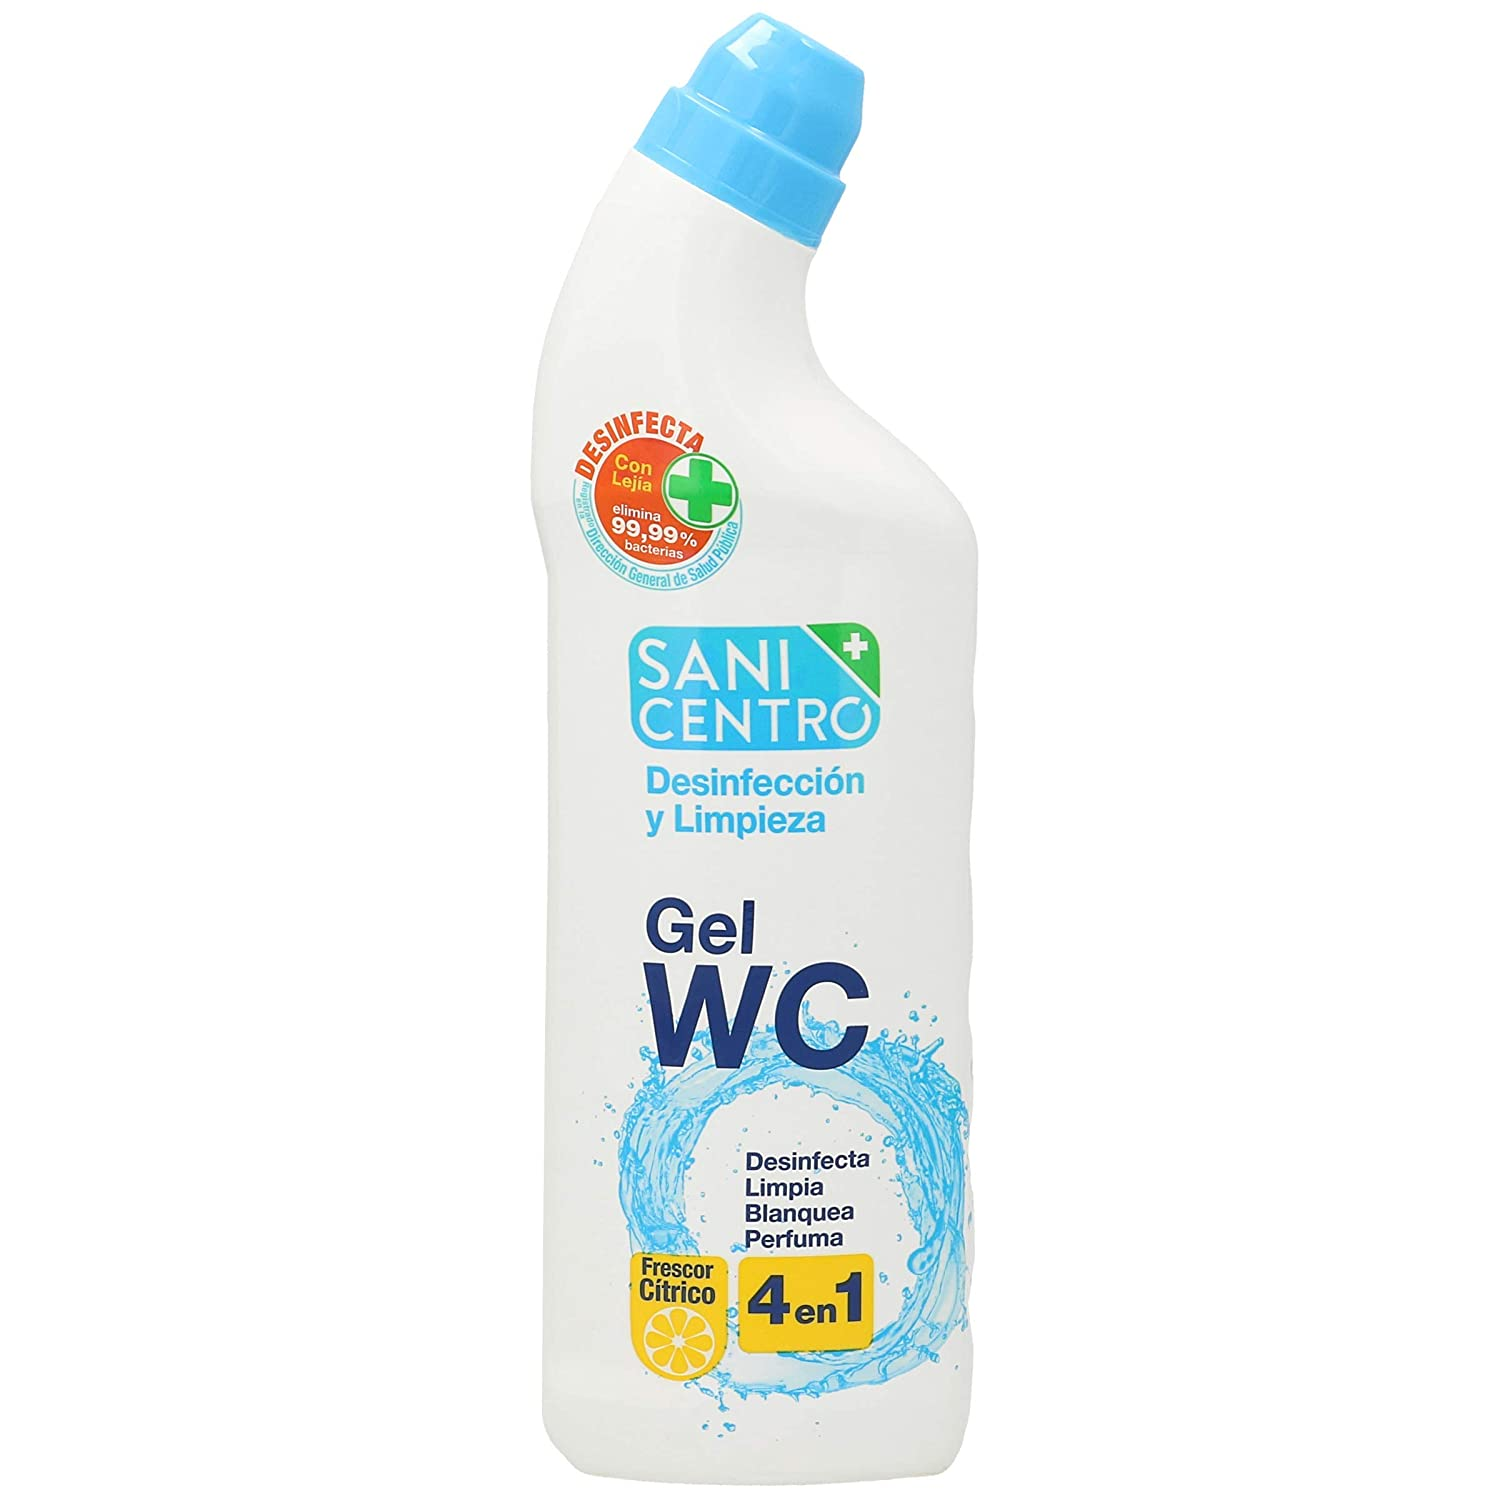 SANICENTRO gel limpiador wc 4 en 1 botella 1 lt: Amazon.es ...